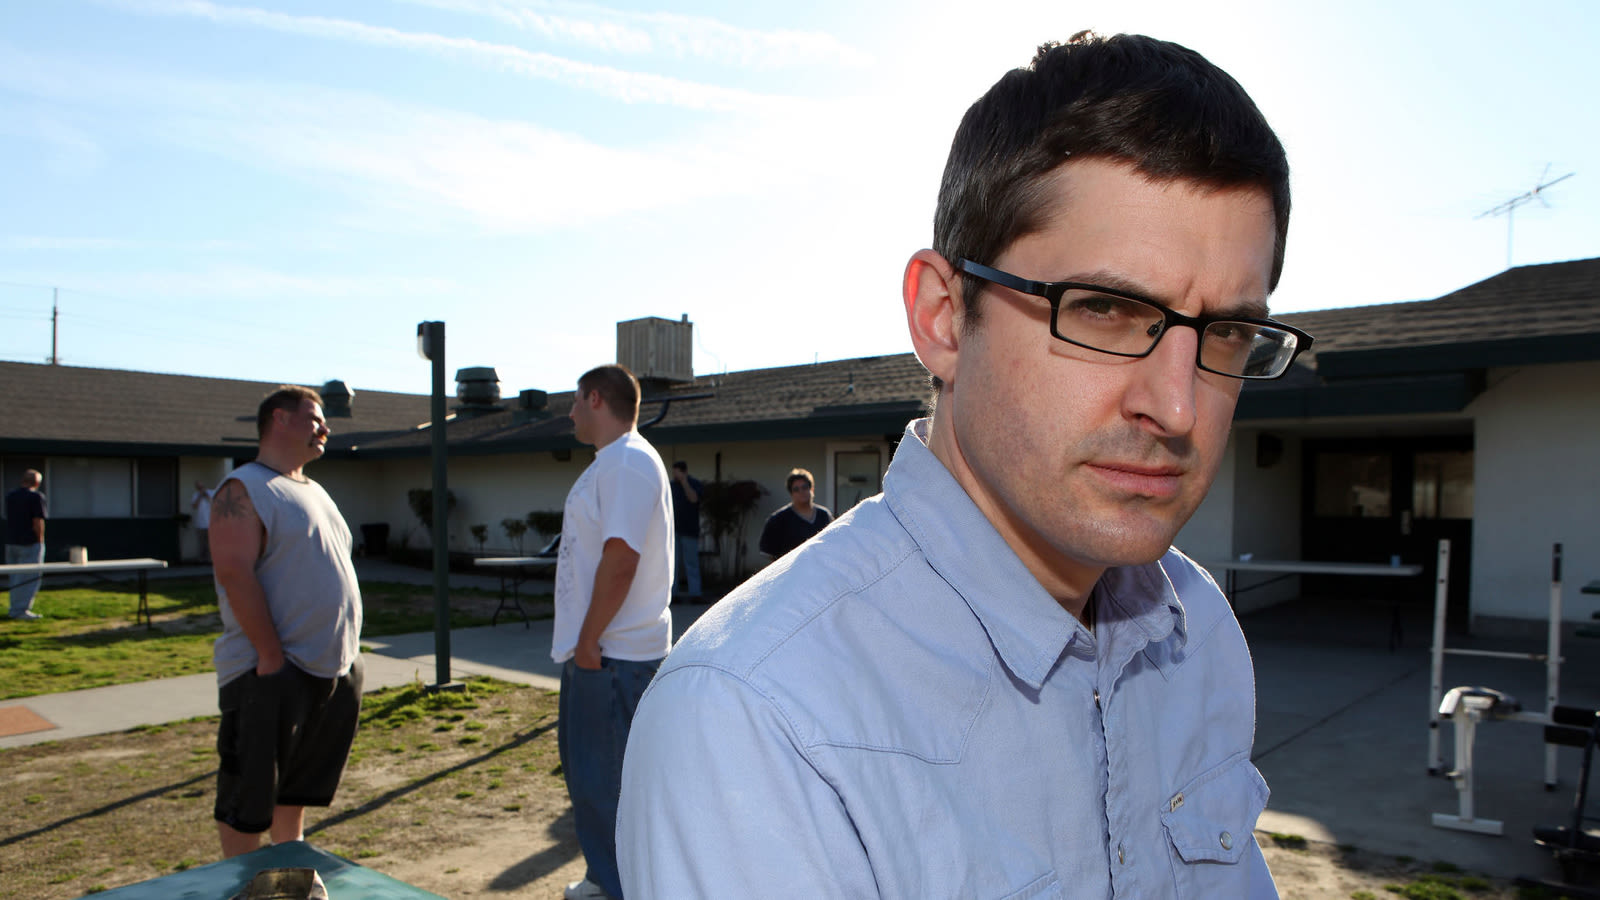 louis theroux contactlouis theroux ultra zionists, louis theroux scientology, louis theroux my scientology movie, louis theroux scientology watch online, louis theroux young, louis theroux movies, louis theroux love, louis theroux ufo, louis theroux online, louis theroux episodes, louis theroux from the yogscast, louis theroux best, louis theroux imdb, louis theroux contact, louis theroux card, louis theroux watch, louis theroux savile, louis theroux bbc, louis theroux stream, louis theroux watch online